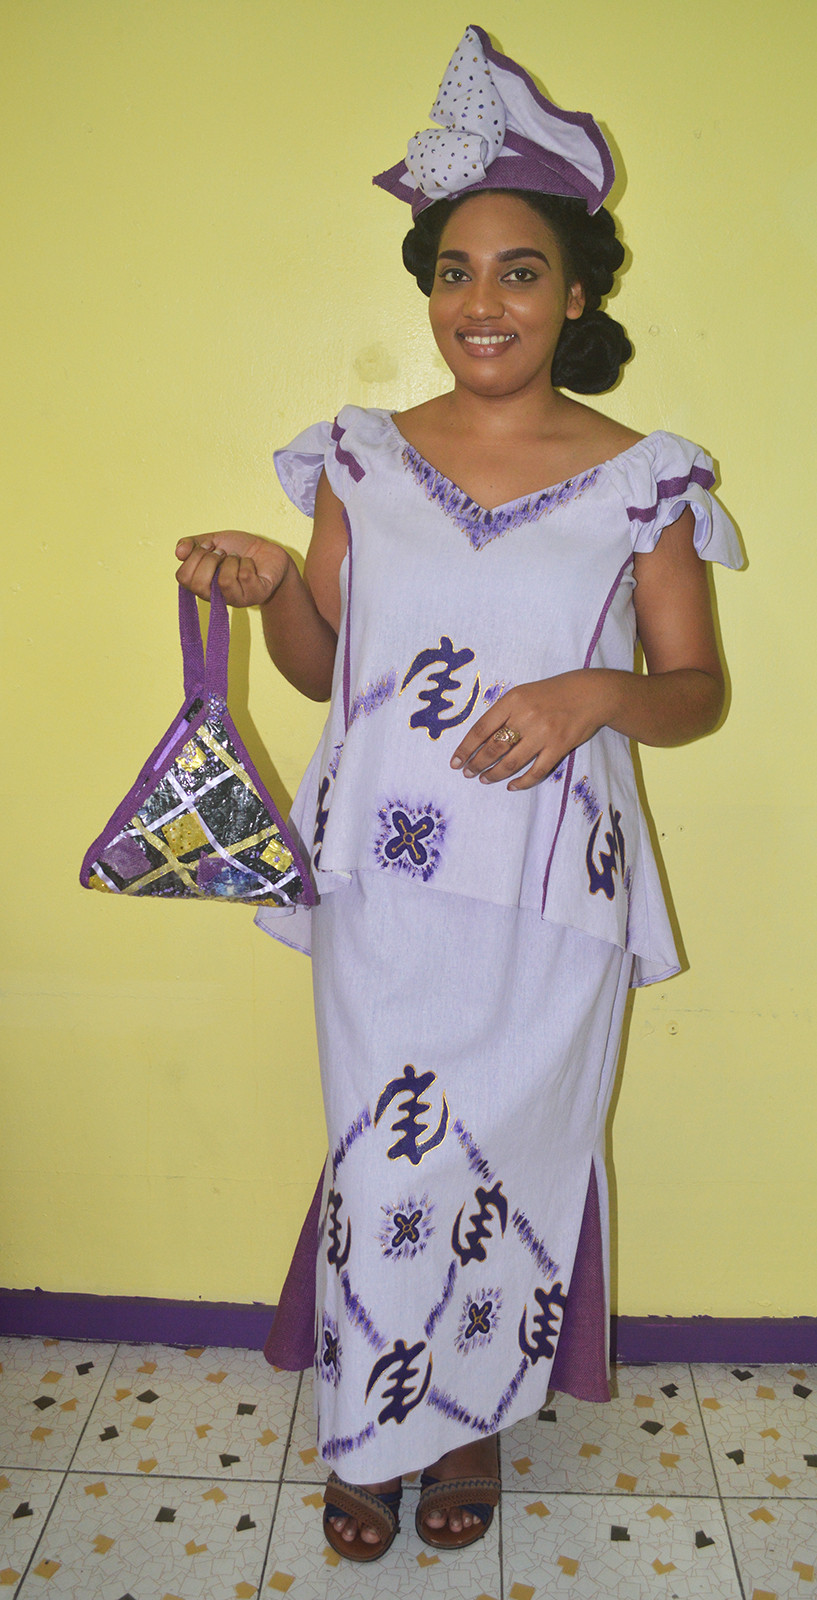 A complete ensemble designed and made by Merleen Forde